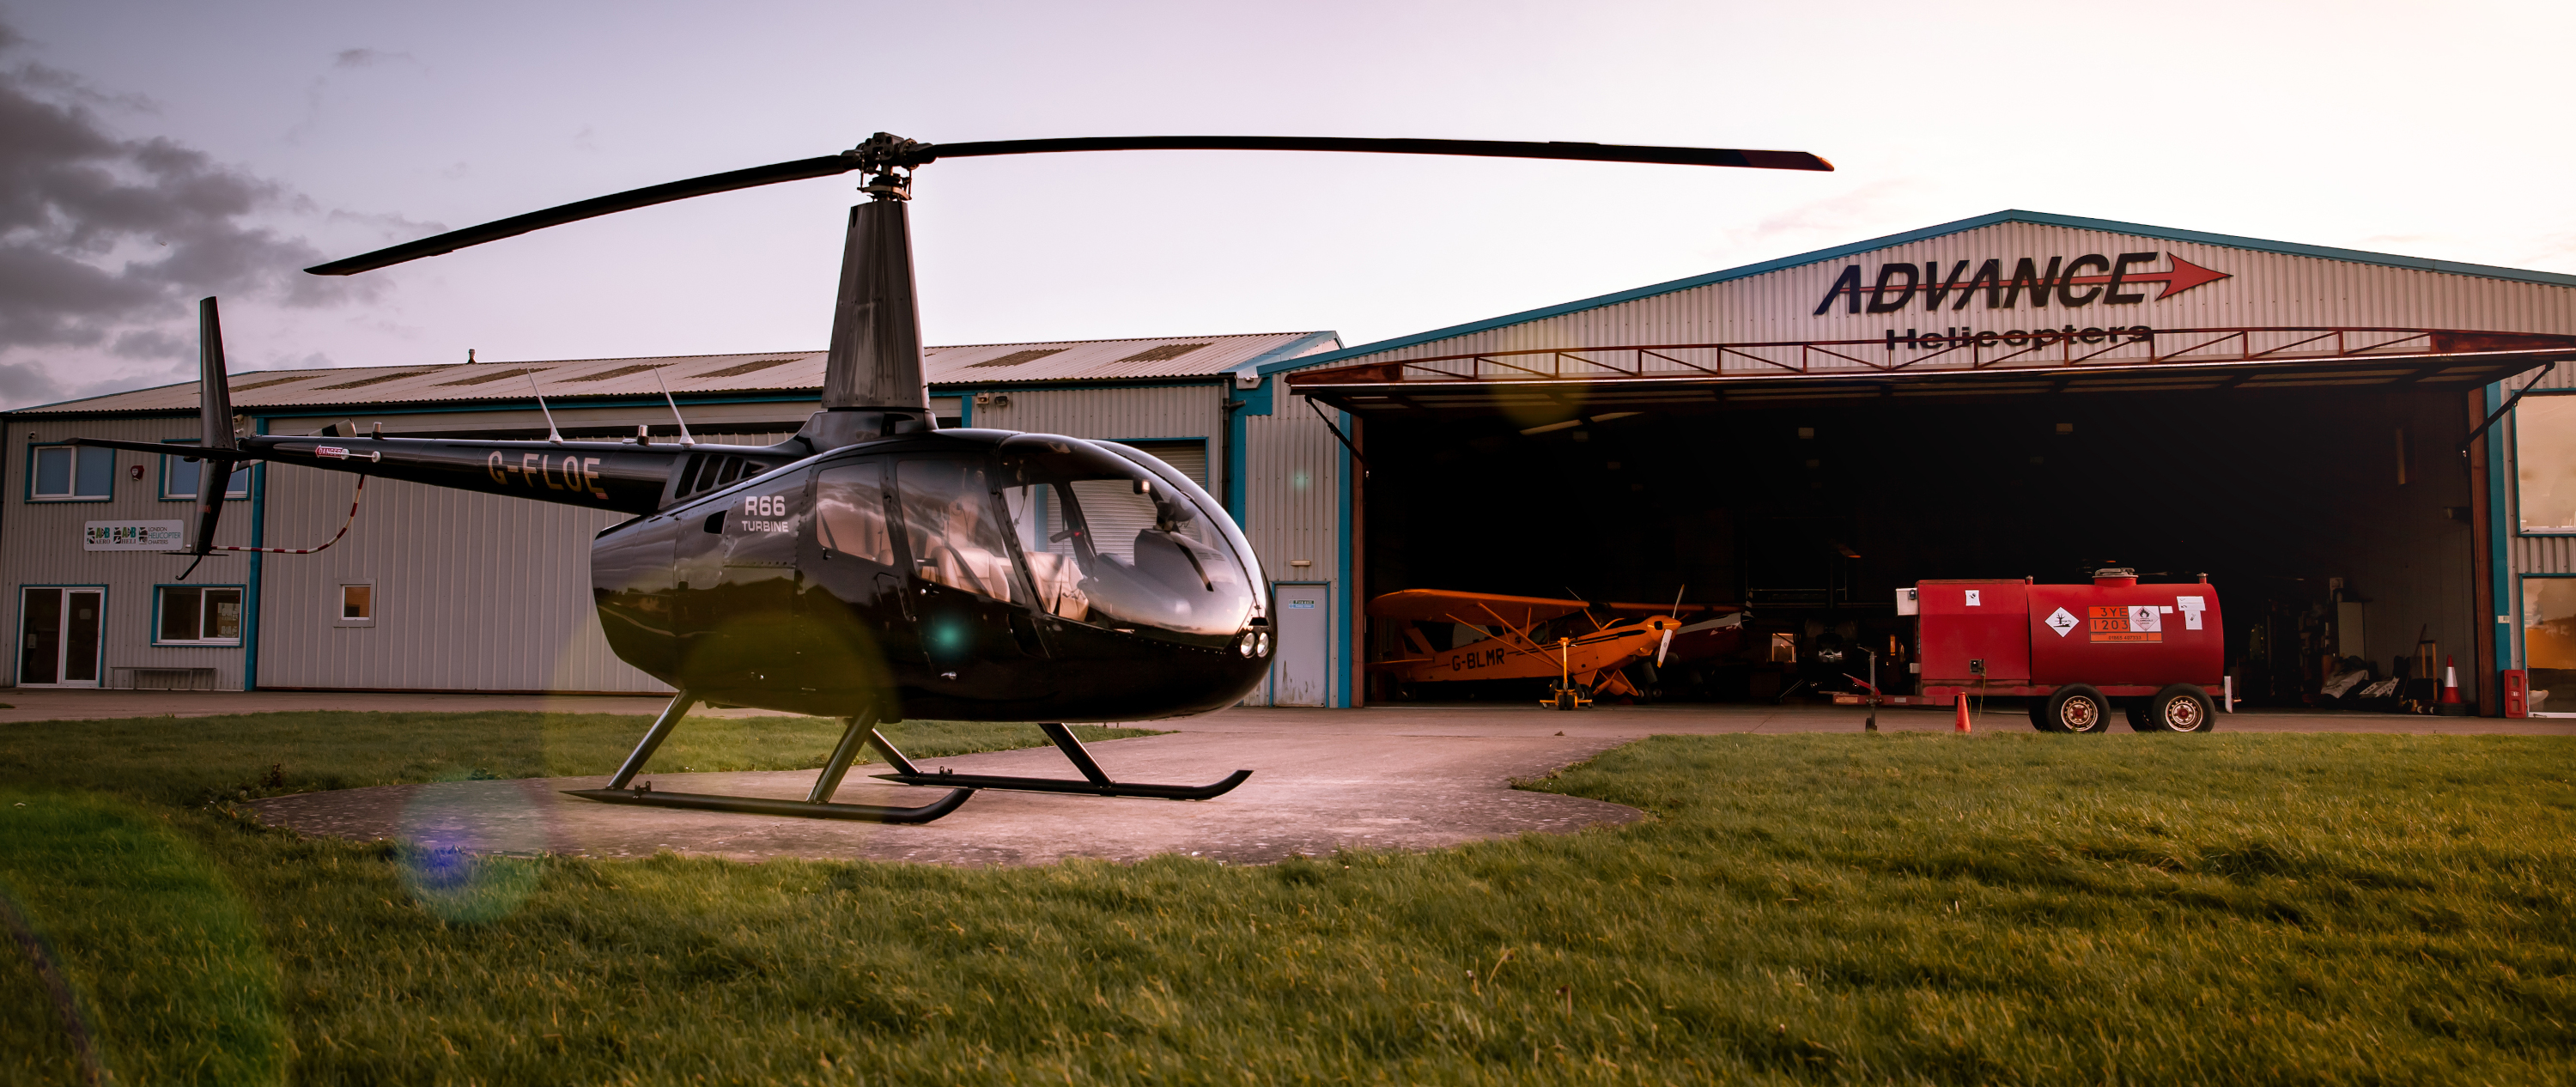 Robinson R66 turbine helicopter in front of Advance Helicopters hangar